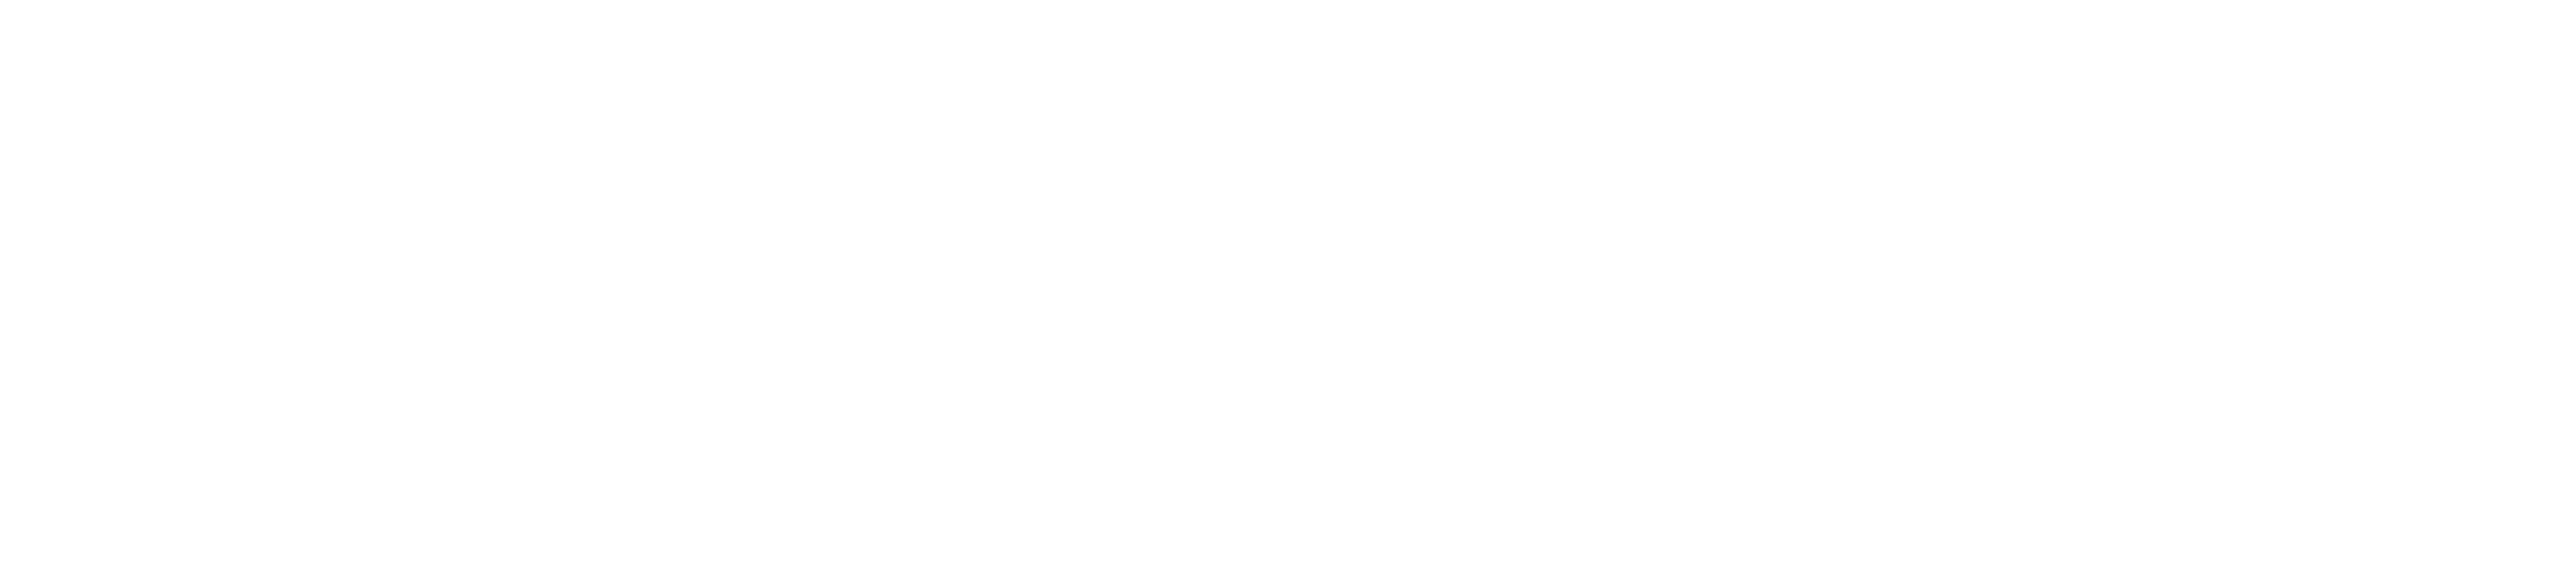 The Landings I & II Apartments logo